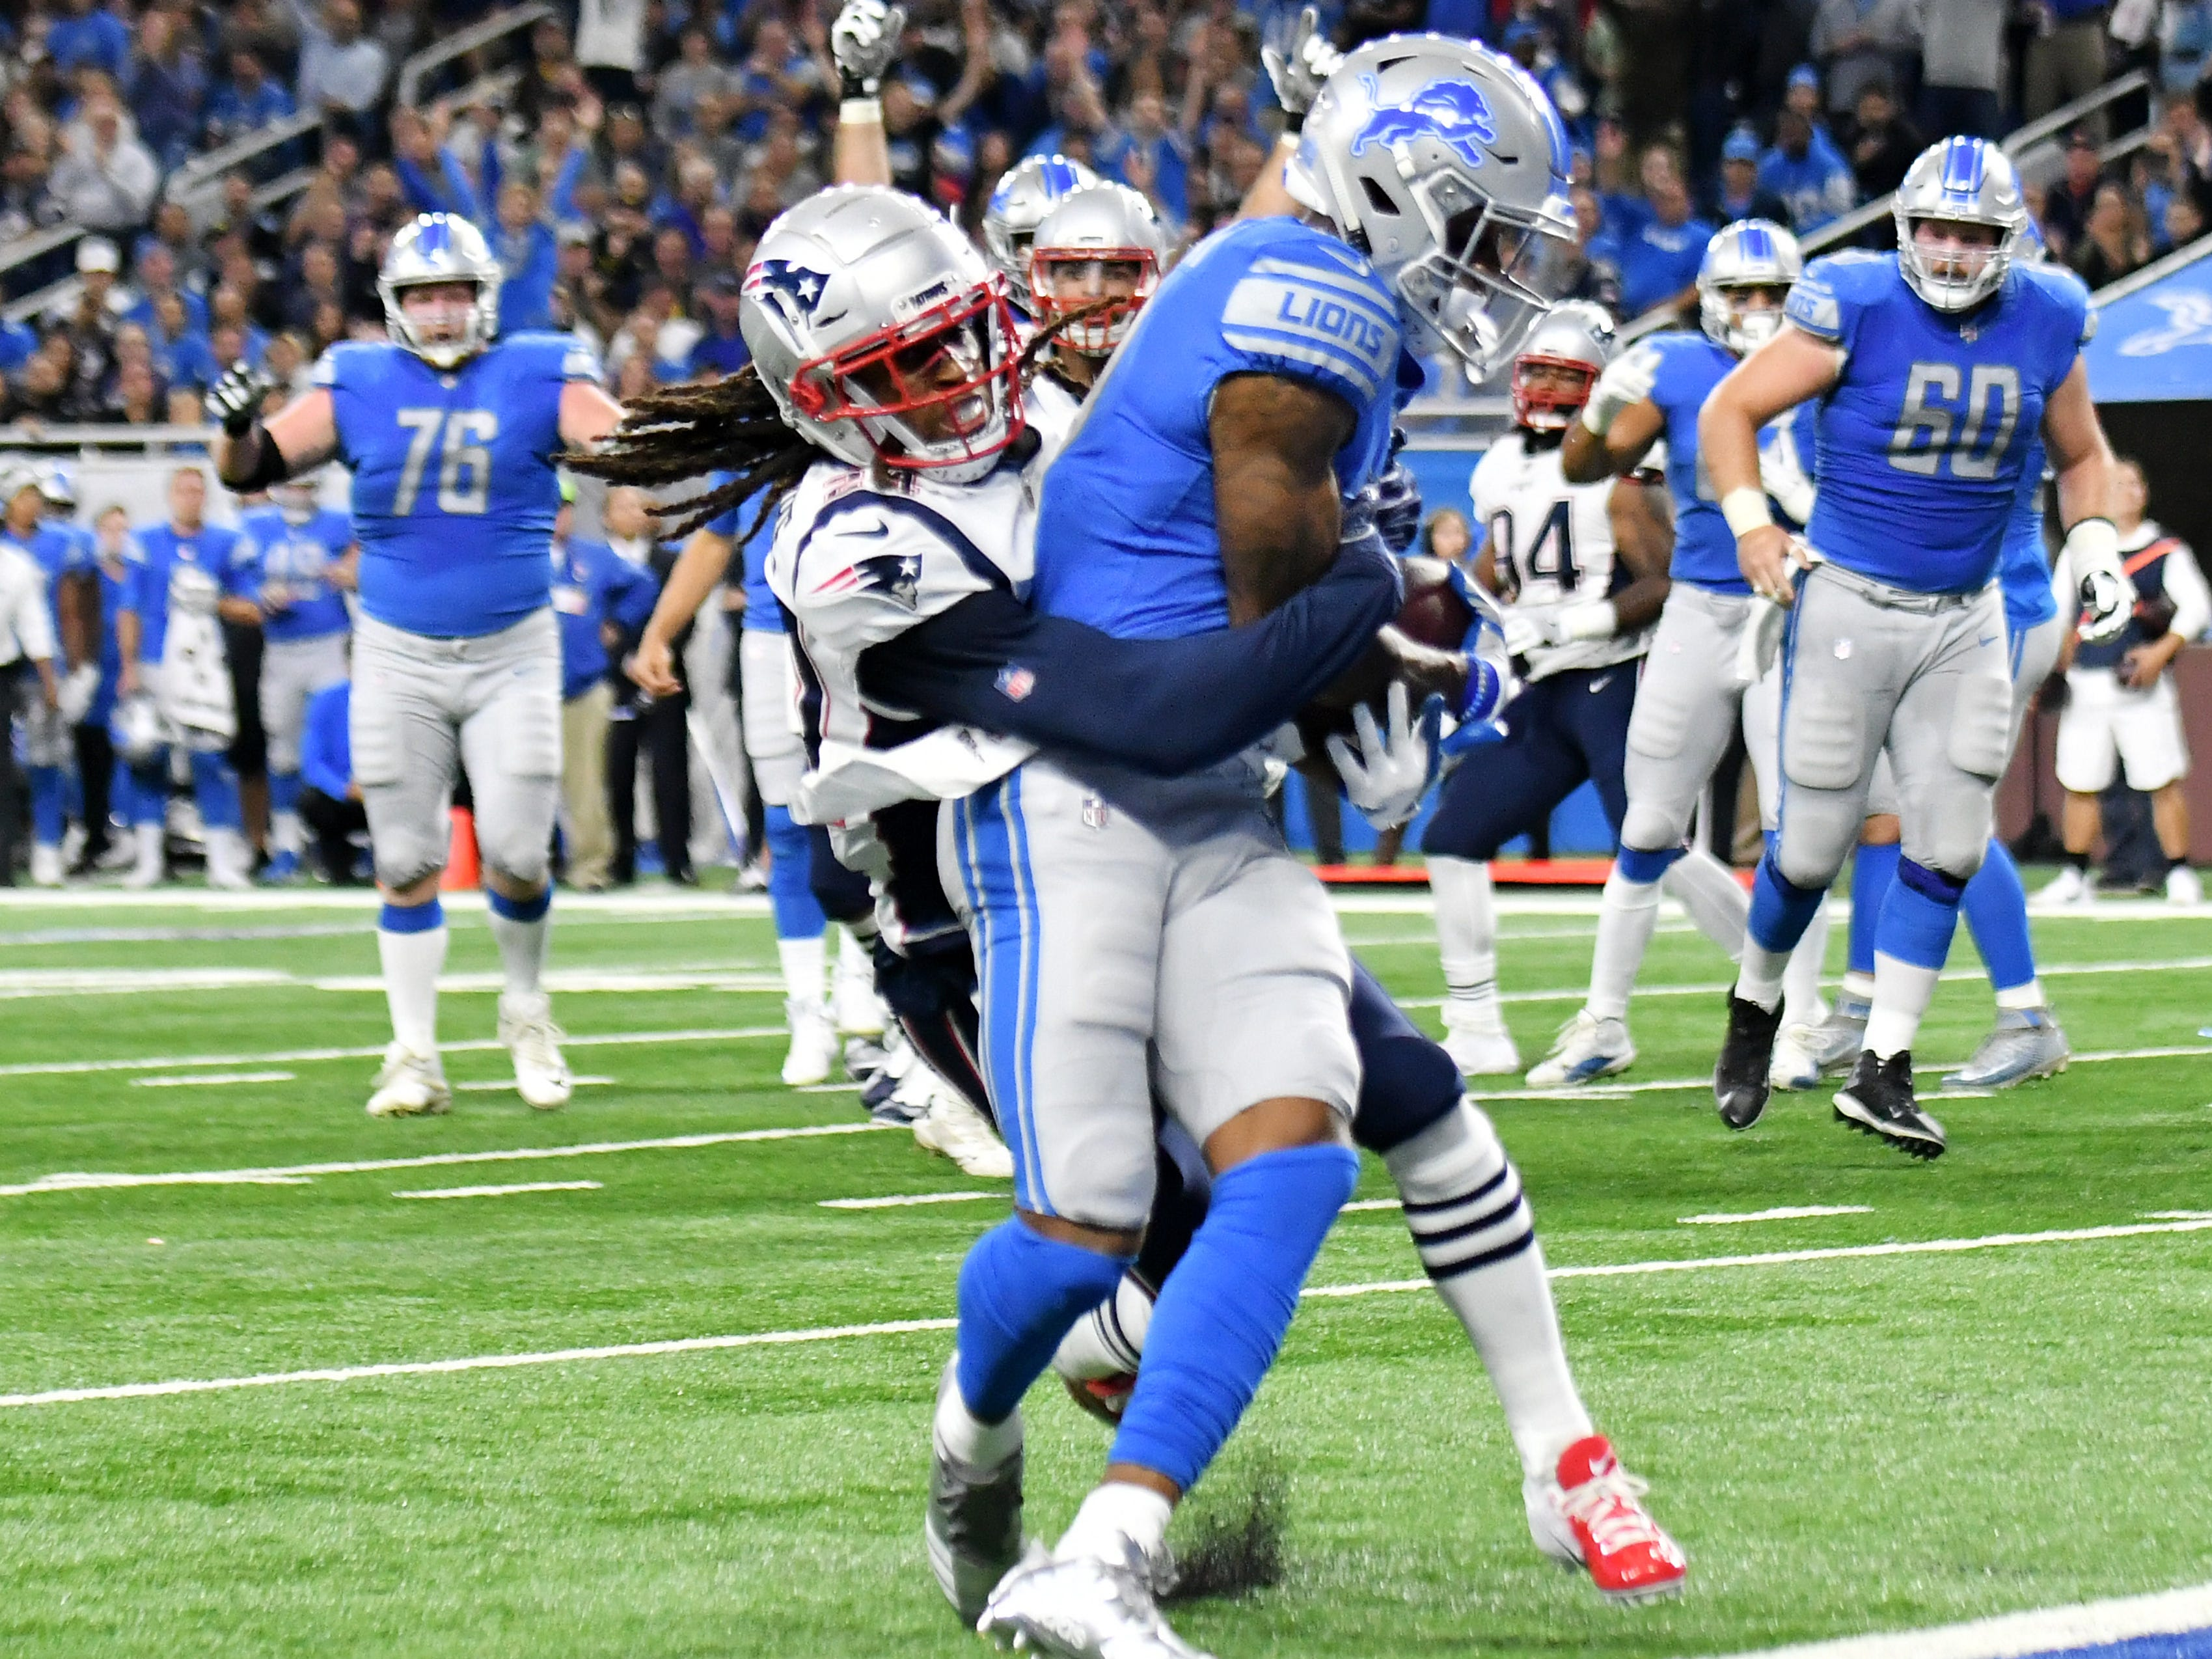 The Patriots' Stephon Gilmore, left, tries to tackle the Lions' Kenny Golladay at the goal line in the second quarter. The play was ruled short initially but after a challenge and review it was ruled a touchdown.